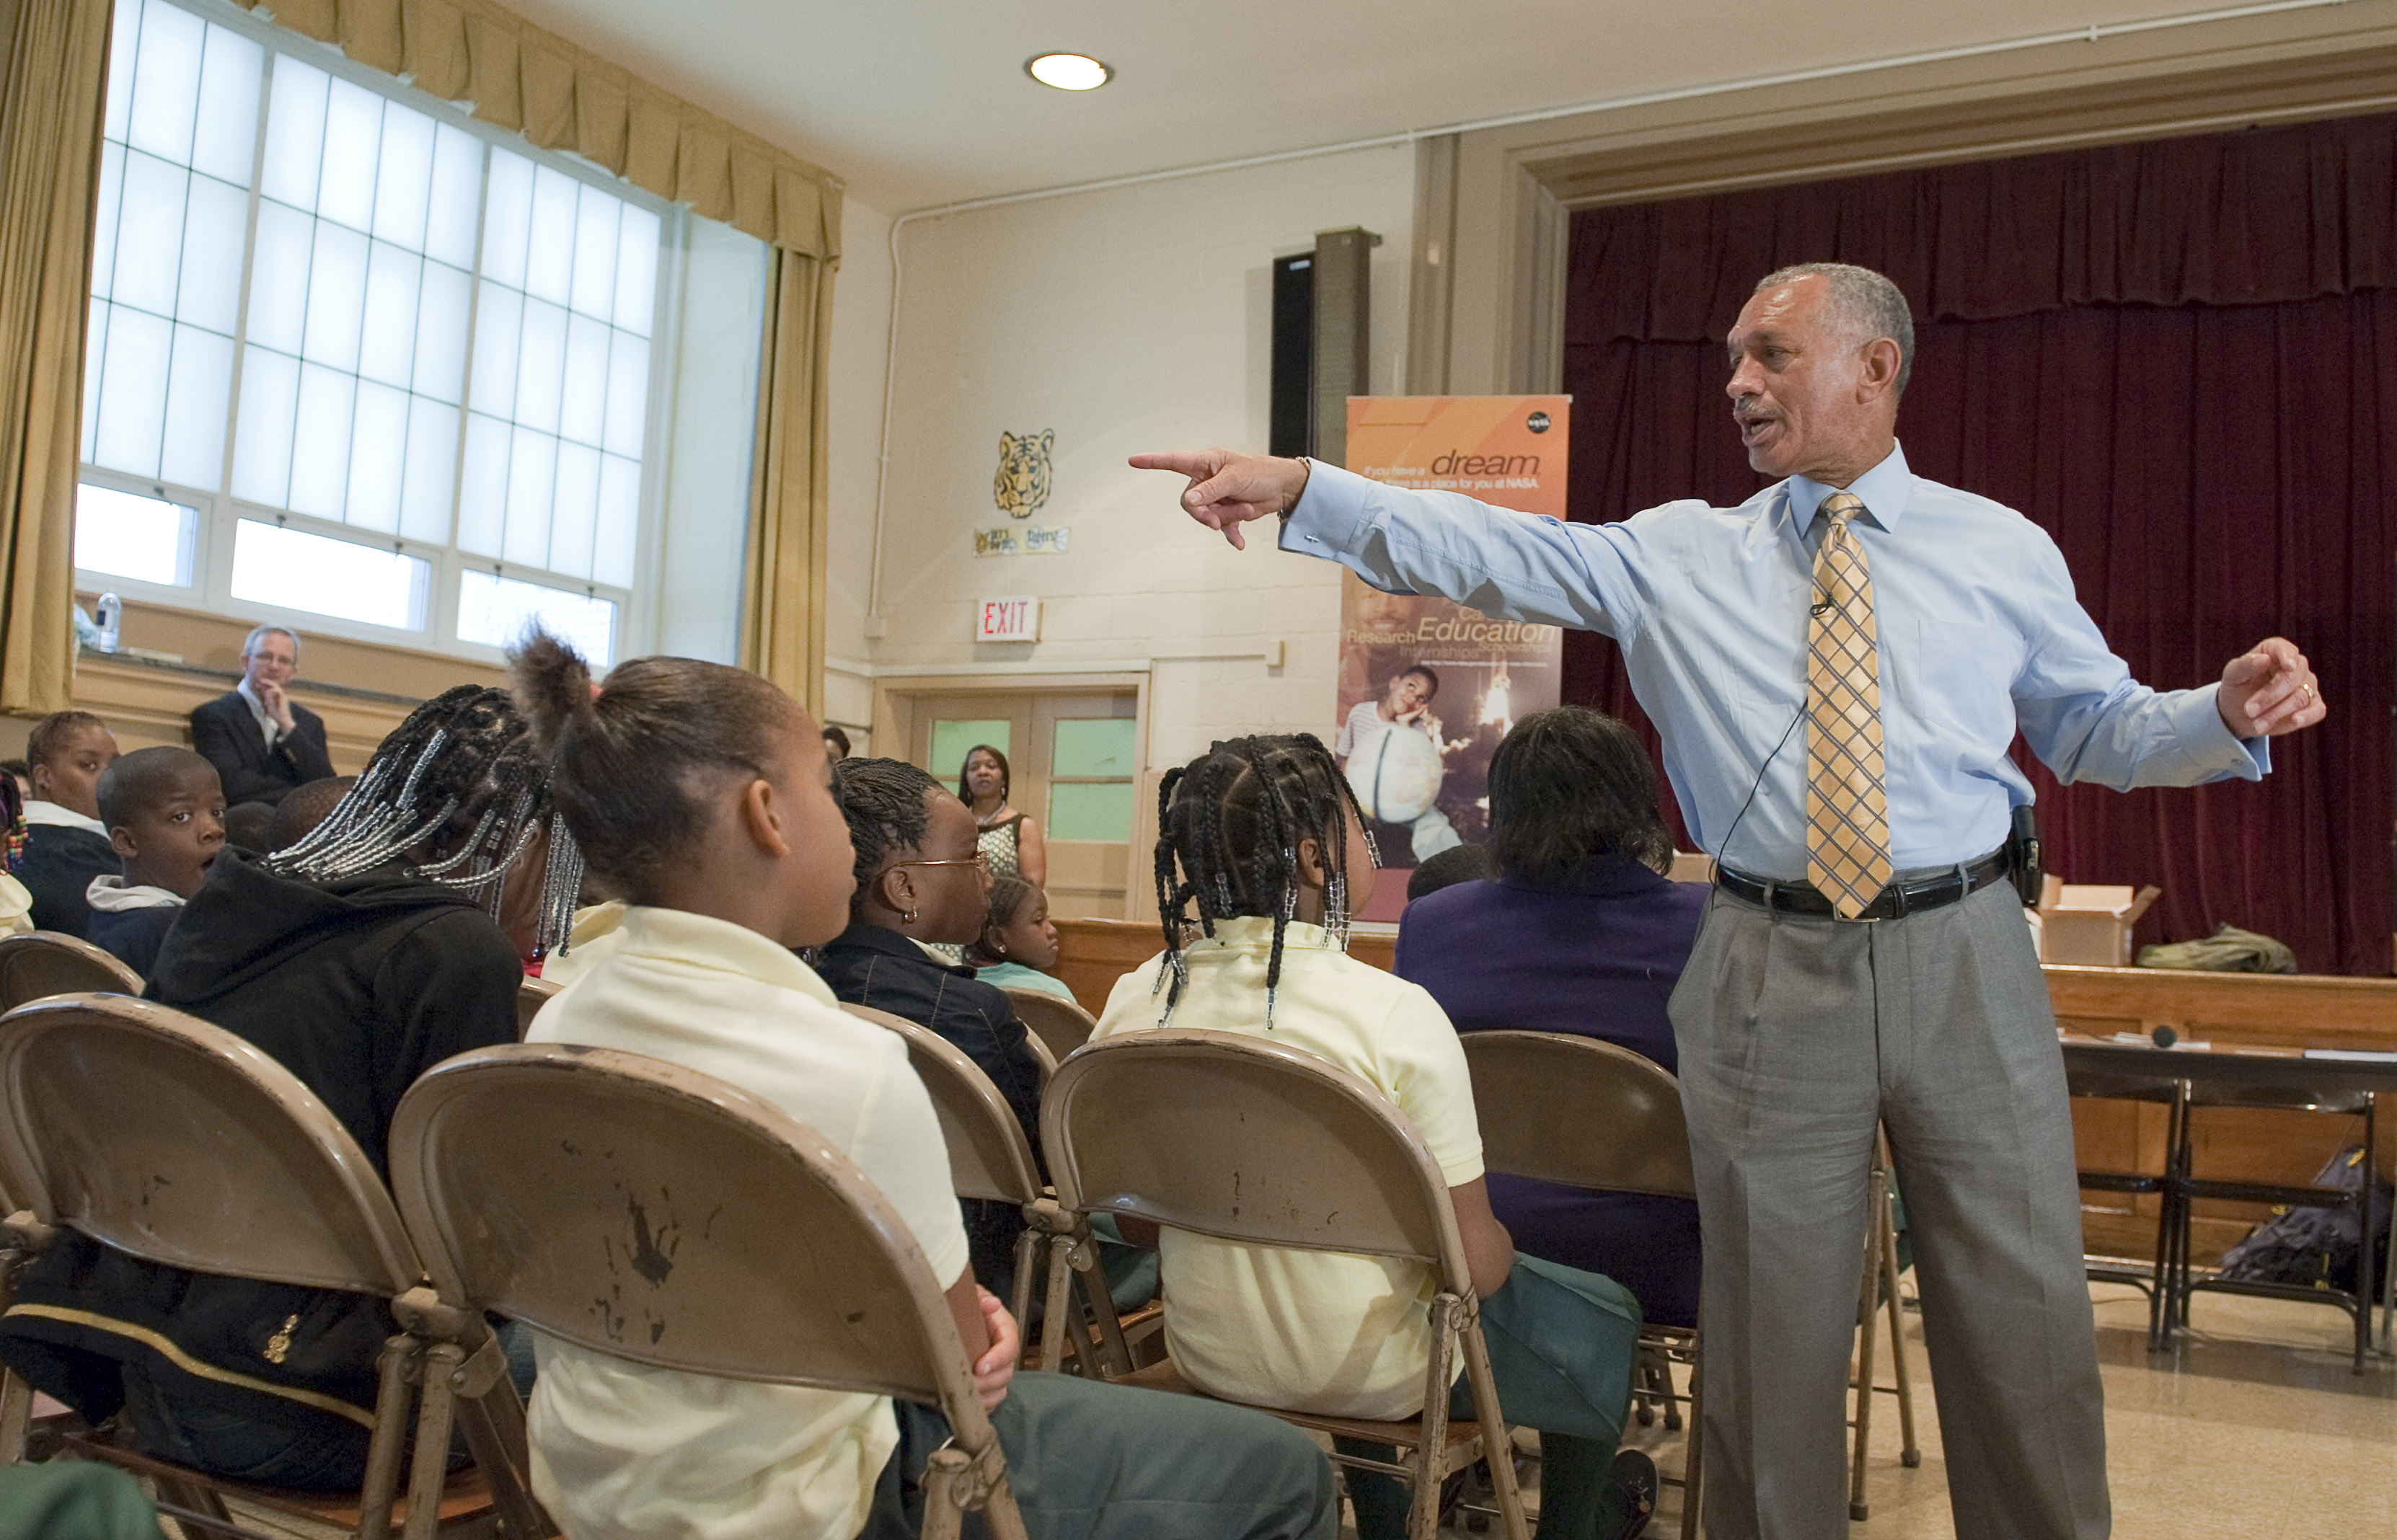 NASA Administrator Charles F. Bolden speaks to students during a visit to Davis Elementary School, Friday, Sept. 11, 2009, in Washington